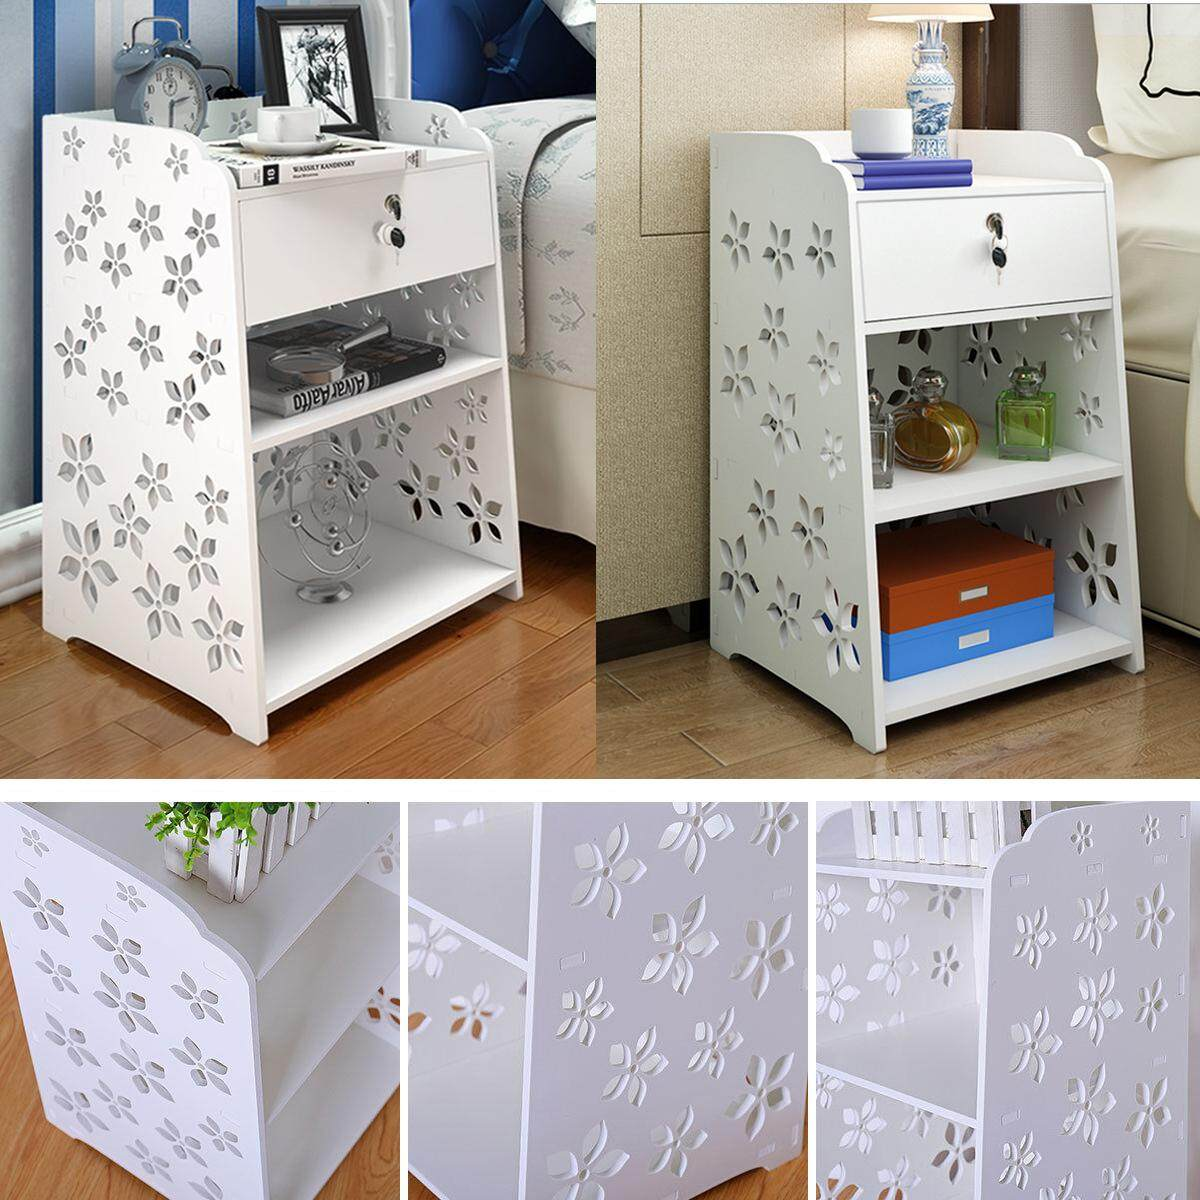 40x30x50cm Modern White Flower Bedroom Bedside Table Rack Cabinet Organizer Night Stand Drawer